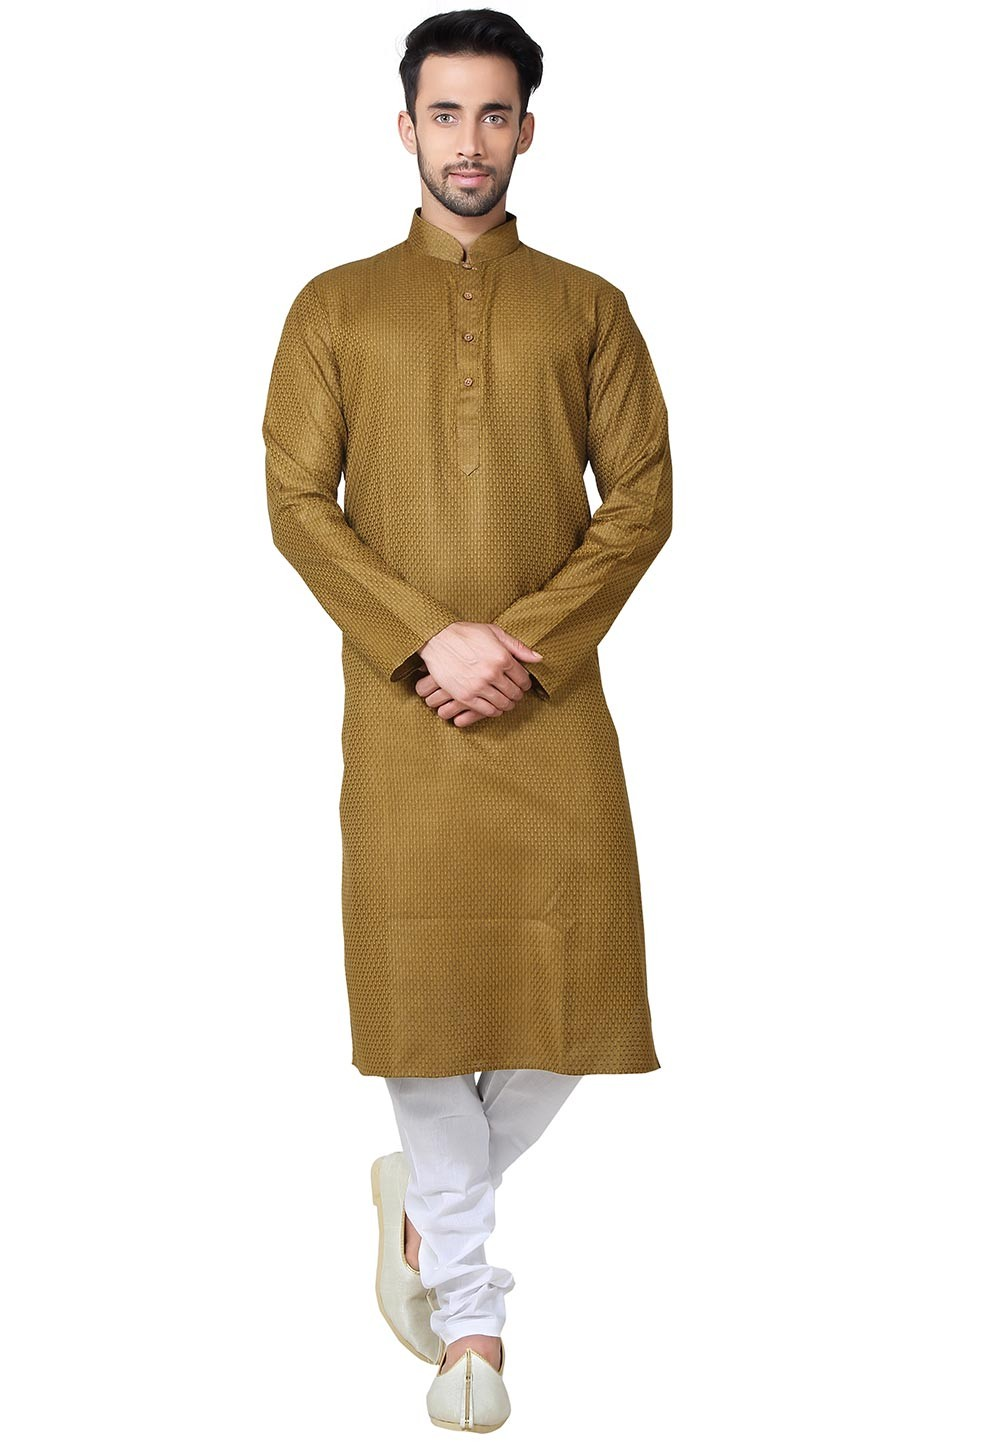 Exquisite Brown,Yellow Color Silk Fabric Readymade Kurta Pyjama.